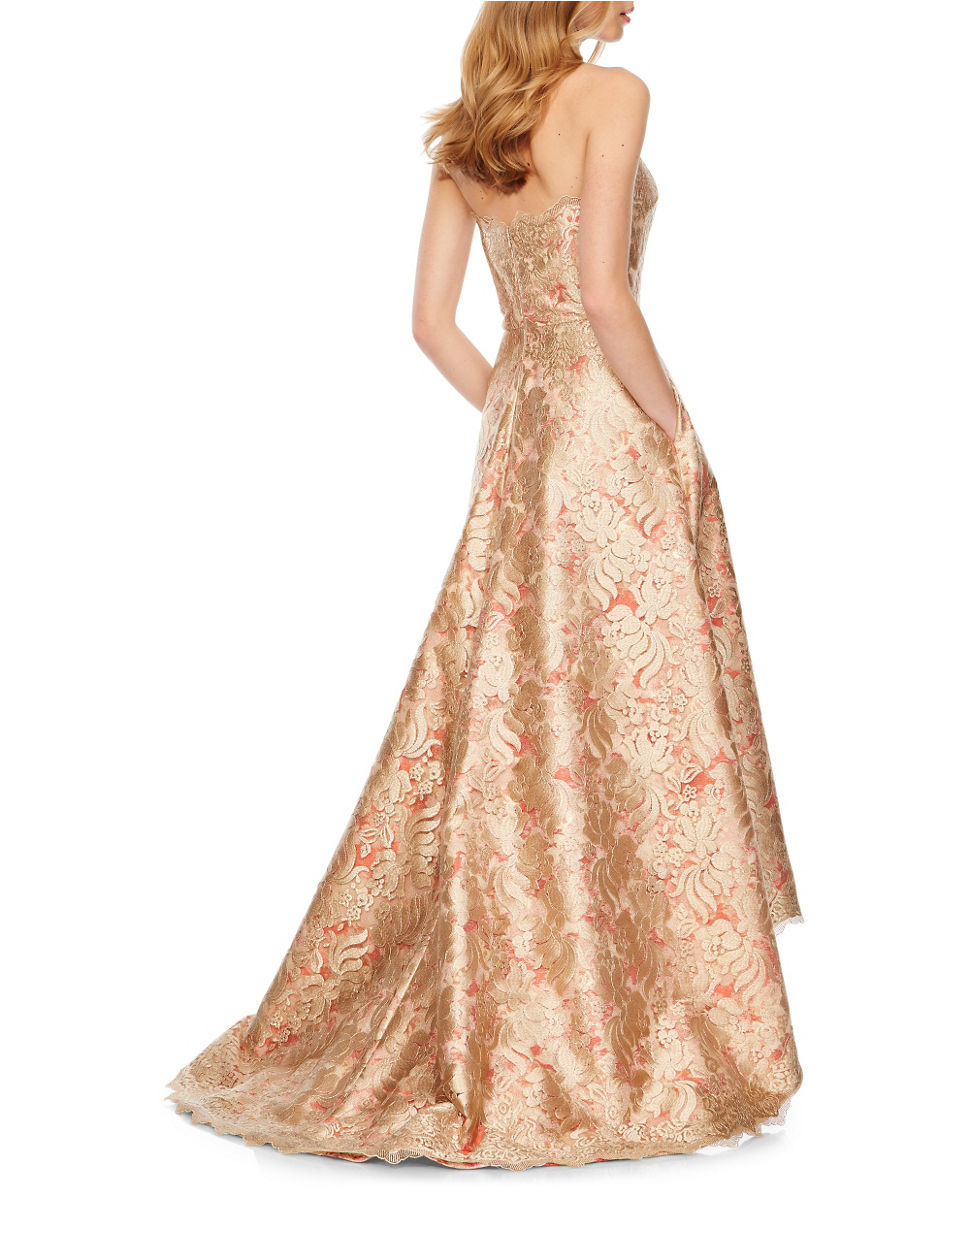 Lo lo lord and taylor party dresses - Gallery Previously Sold At Lord Taylor